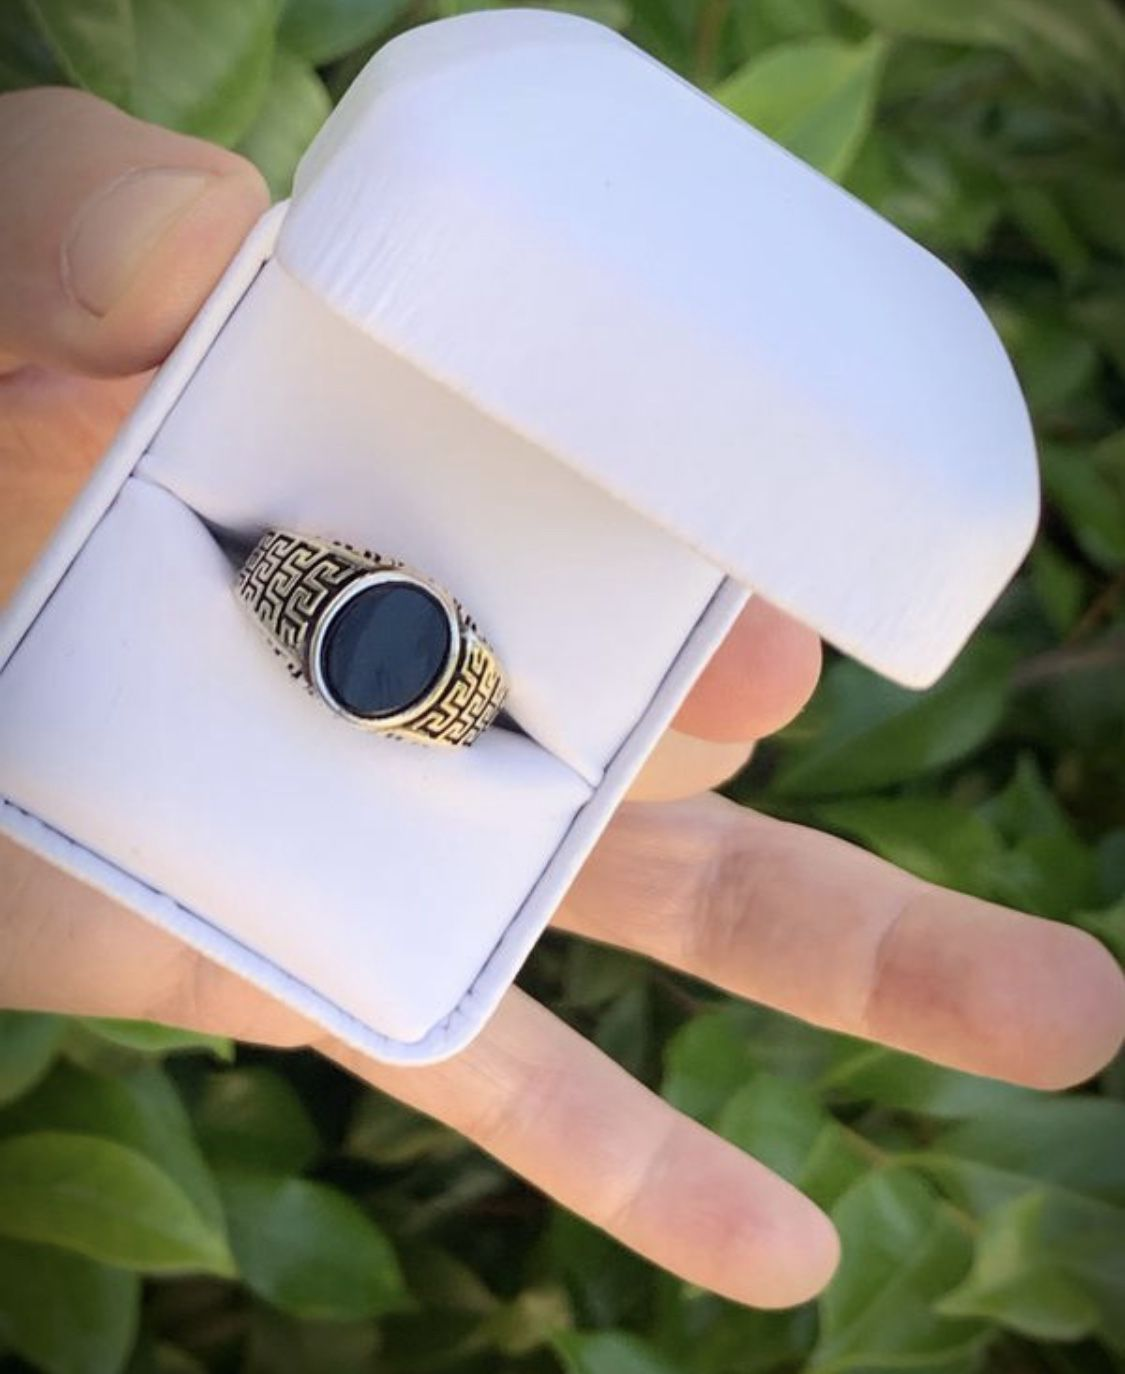 STATELY! Size 9 Solid 925 Sterling Silver GREEK KEY RING Gemstone: Smooth Oval Cut Cabochon Onyx MEN'S WOMEN'S UNISEX